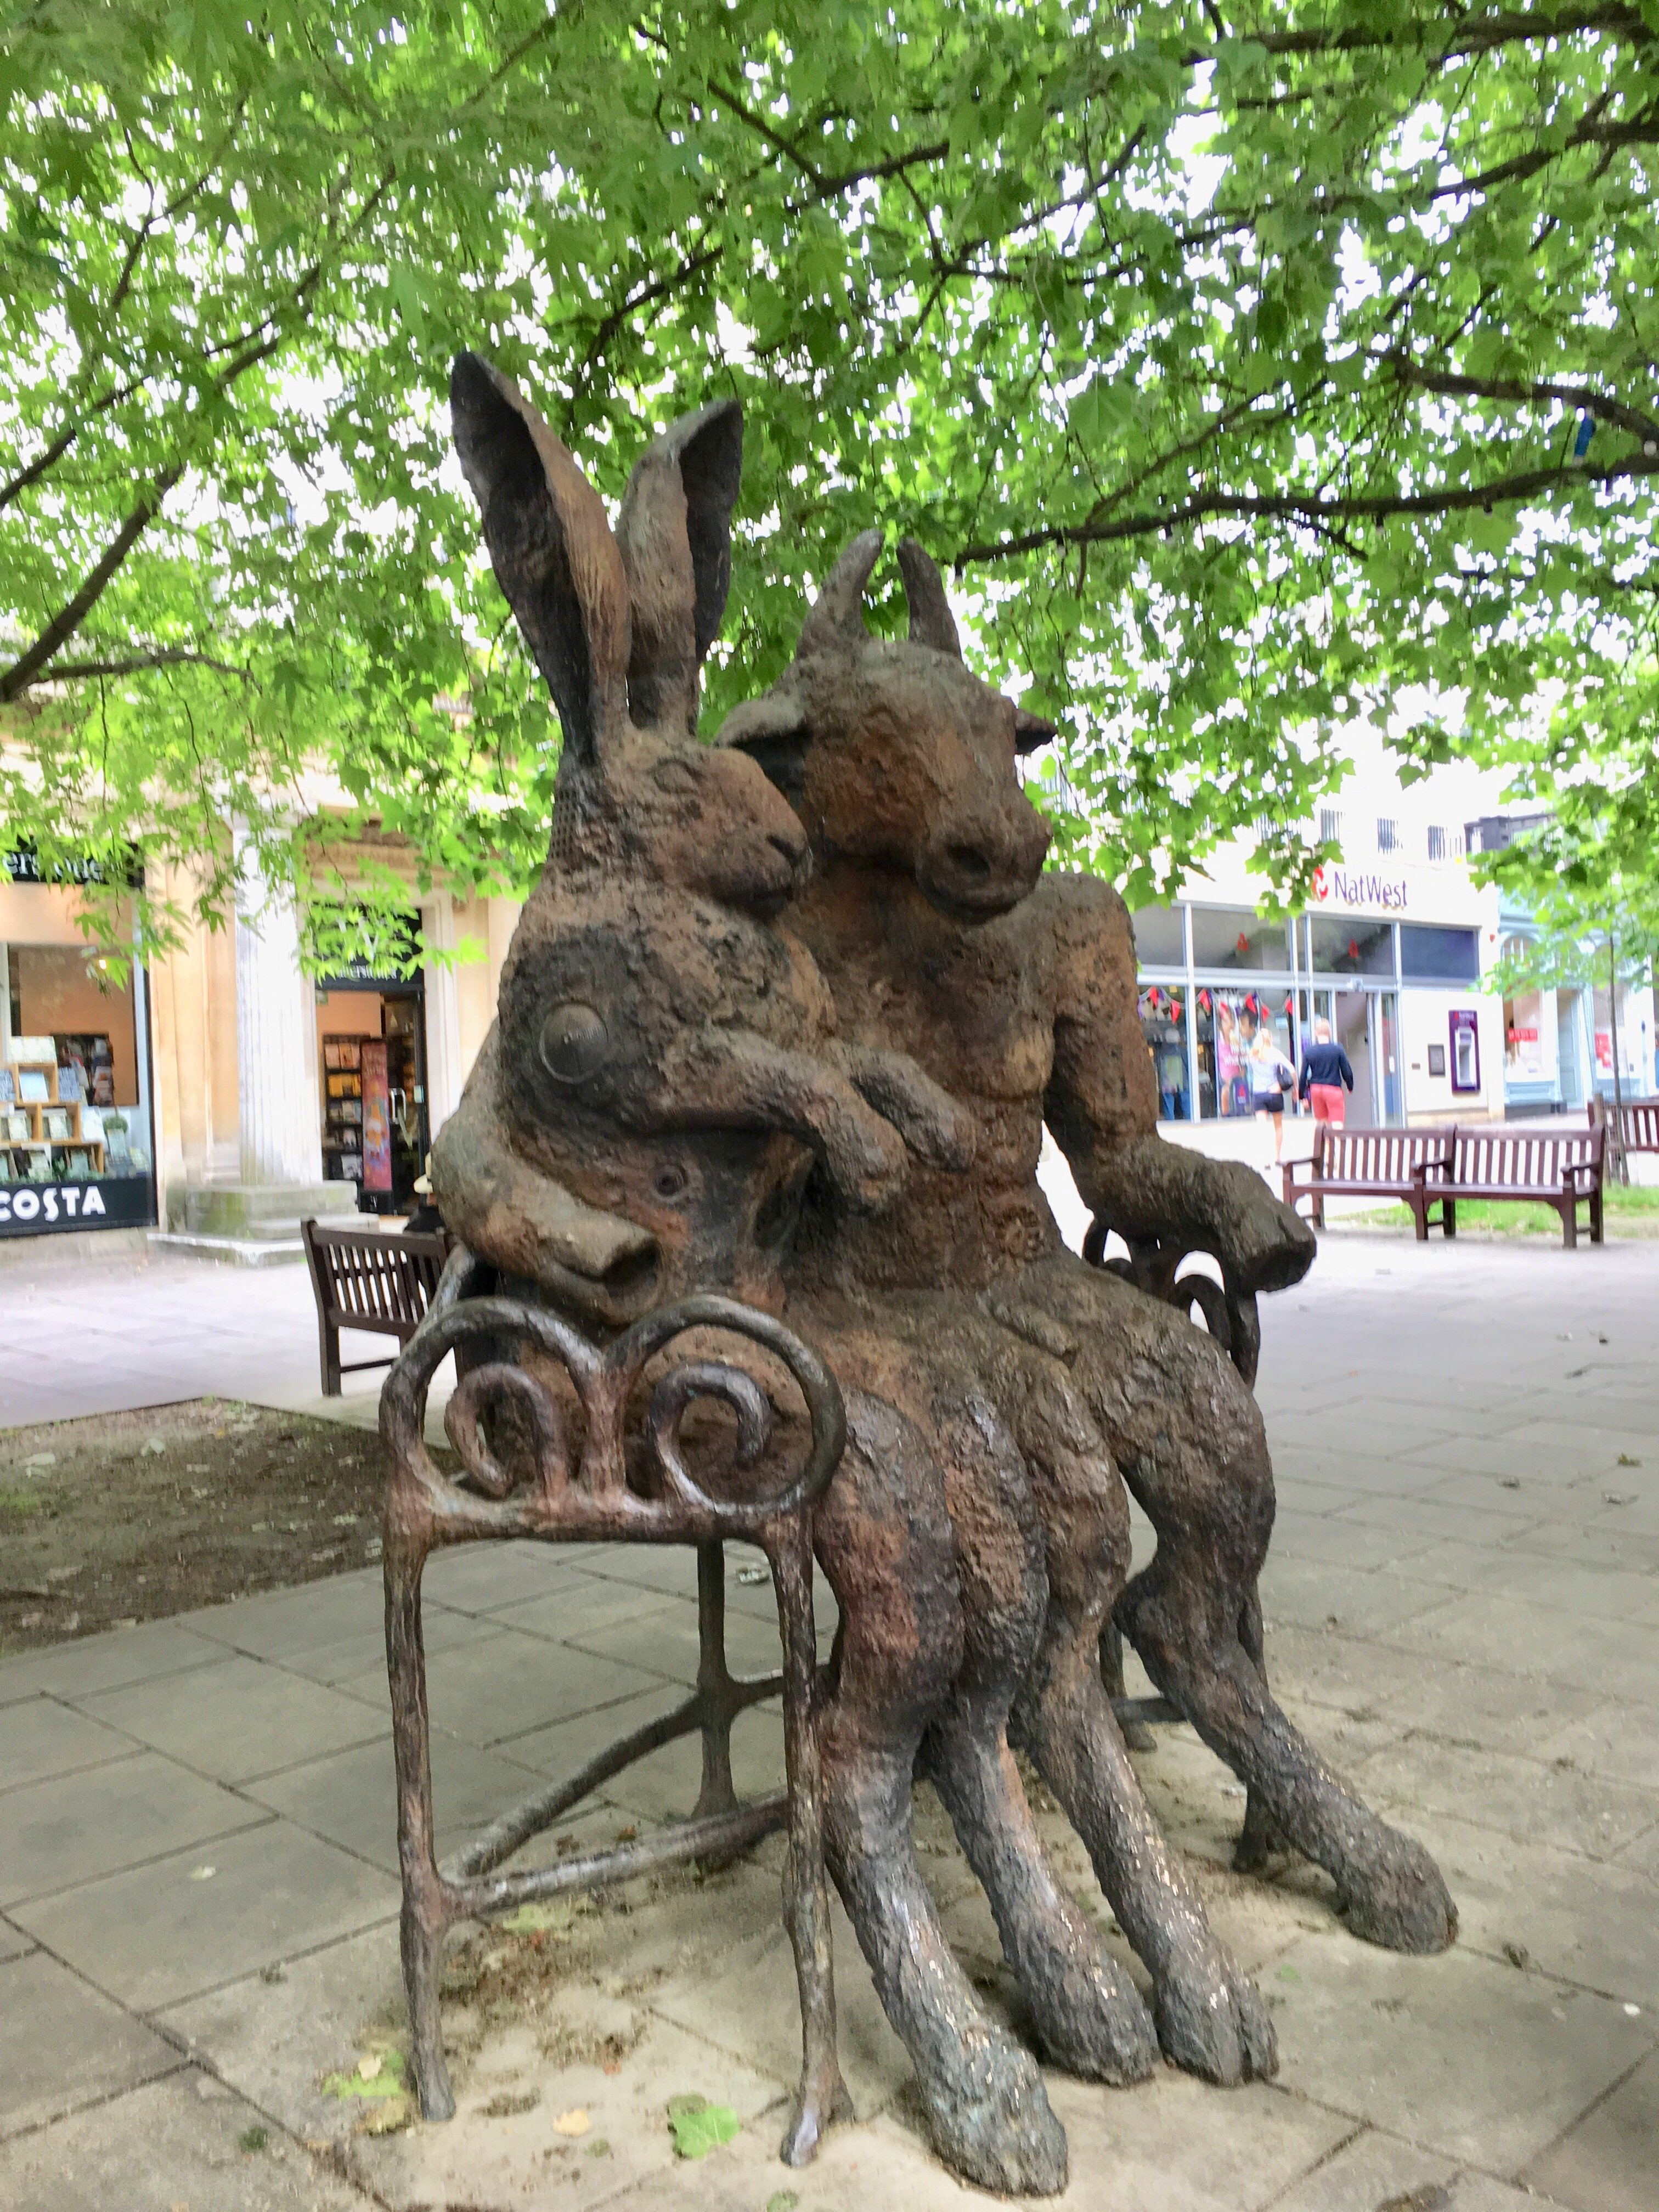 Cheltenham is anexcellent base from which to explore the Cotswolds. Whether you have a day or a week set aside, rest assured that you will have plenty to do. Cheltenhamis renowned for its shopping, theatre and festivals. #travel #UK #Cotswolds